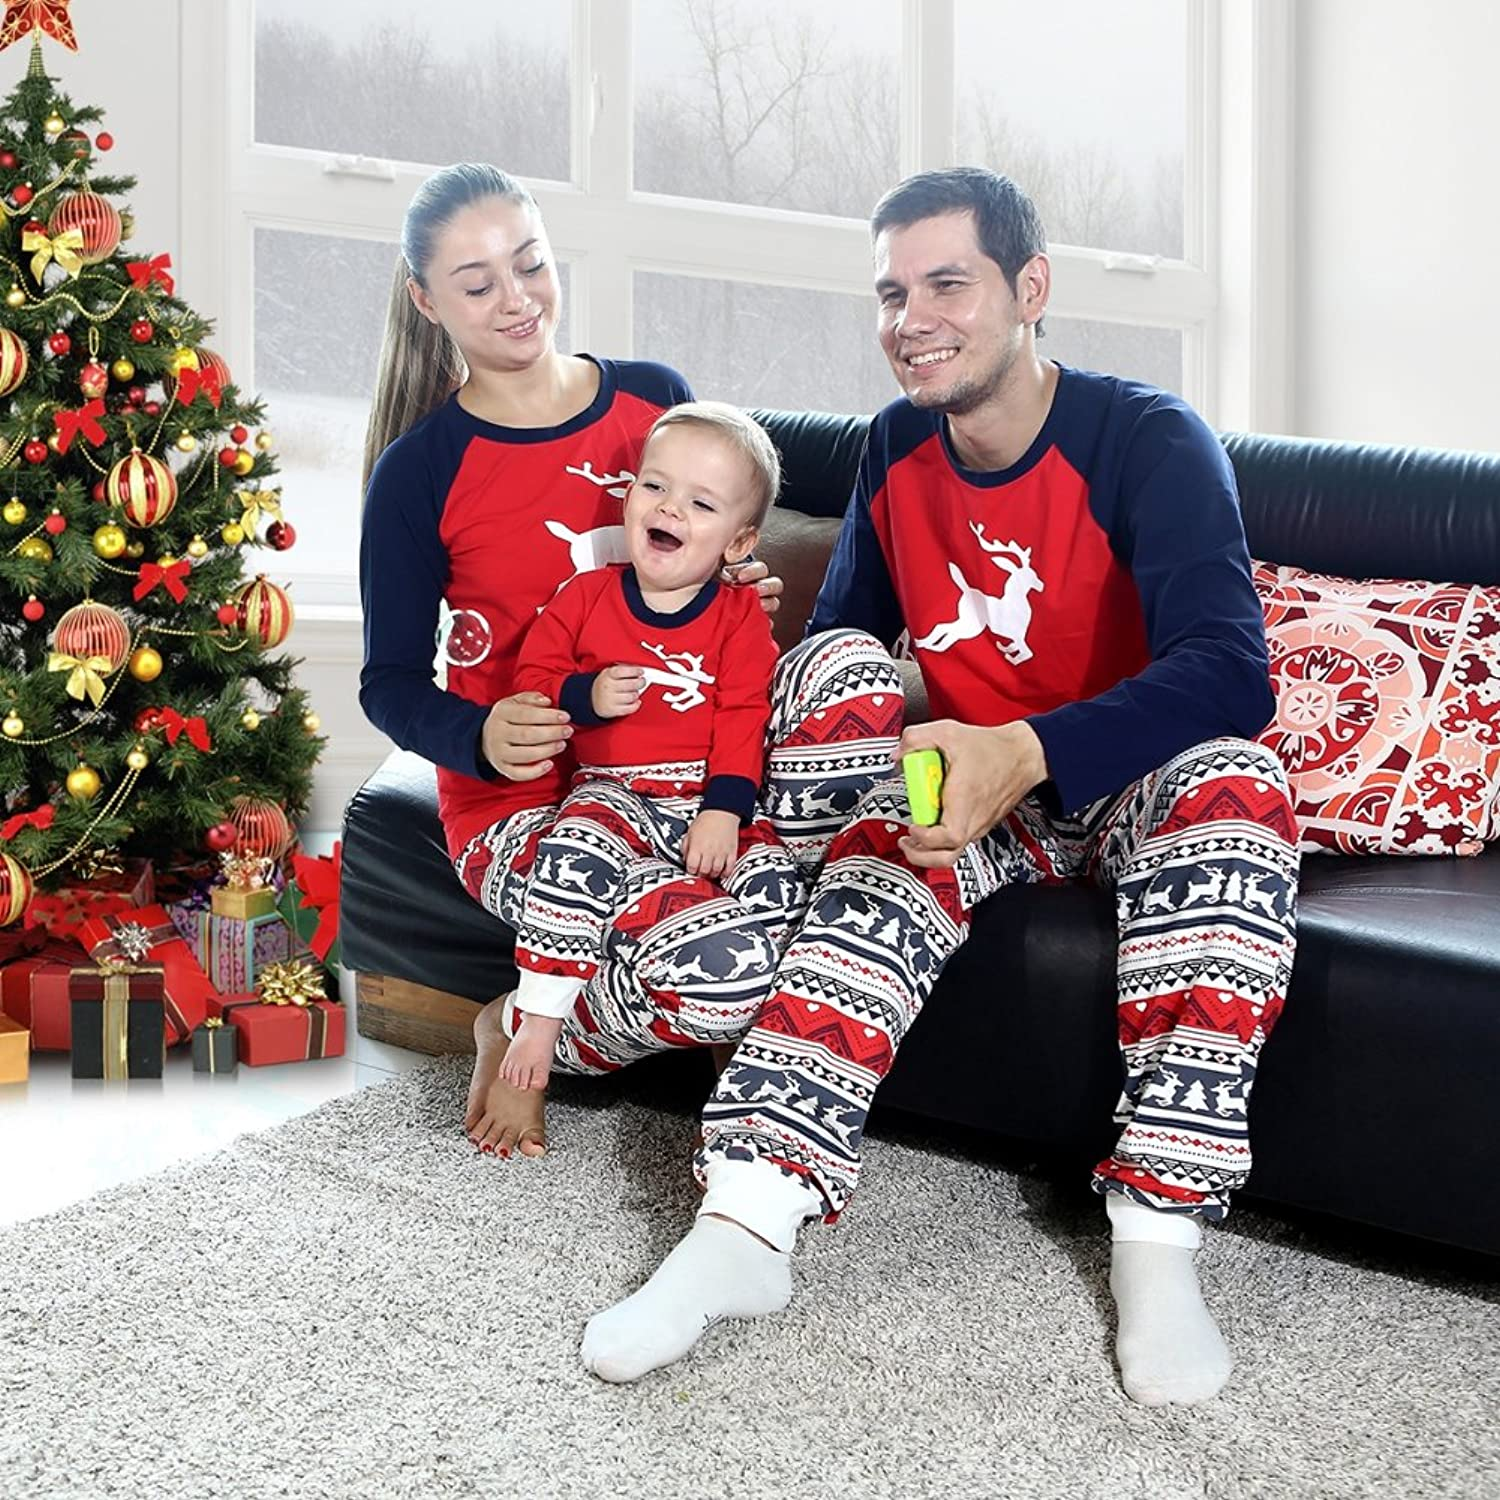 ... super popular 5c6cc ed063 Amazon.com EFINNY Matching Family Christmas  Pajama Sets Striped Flannel Kids ... 1a71eb72a